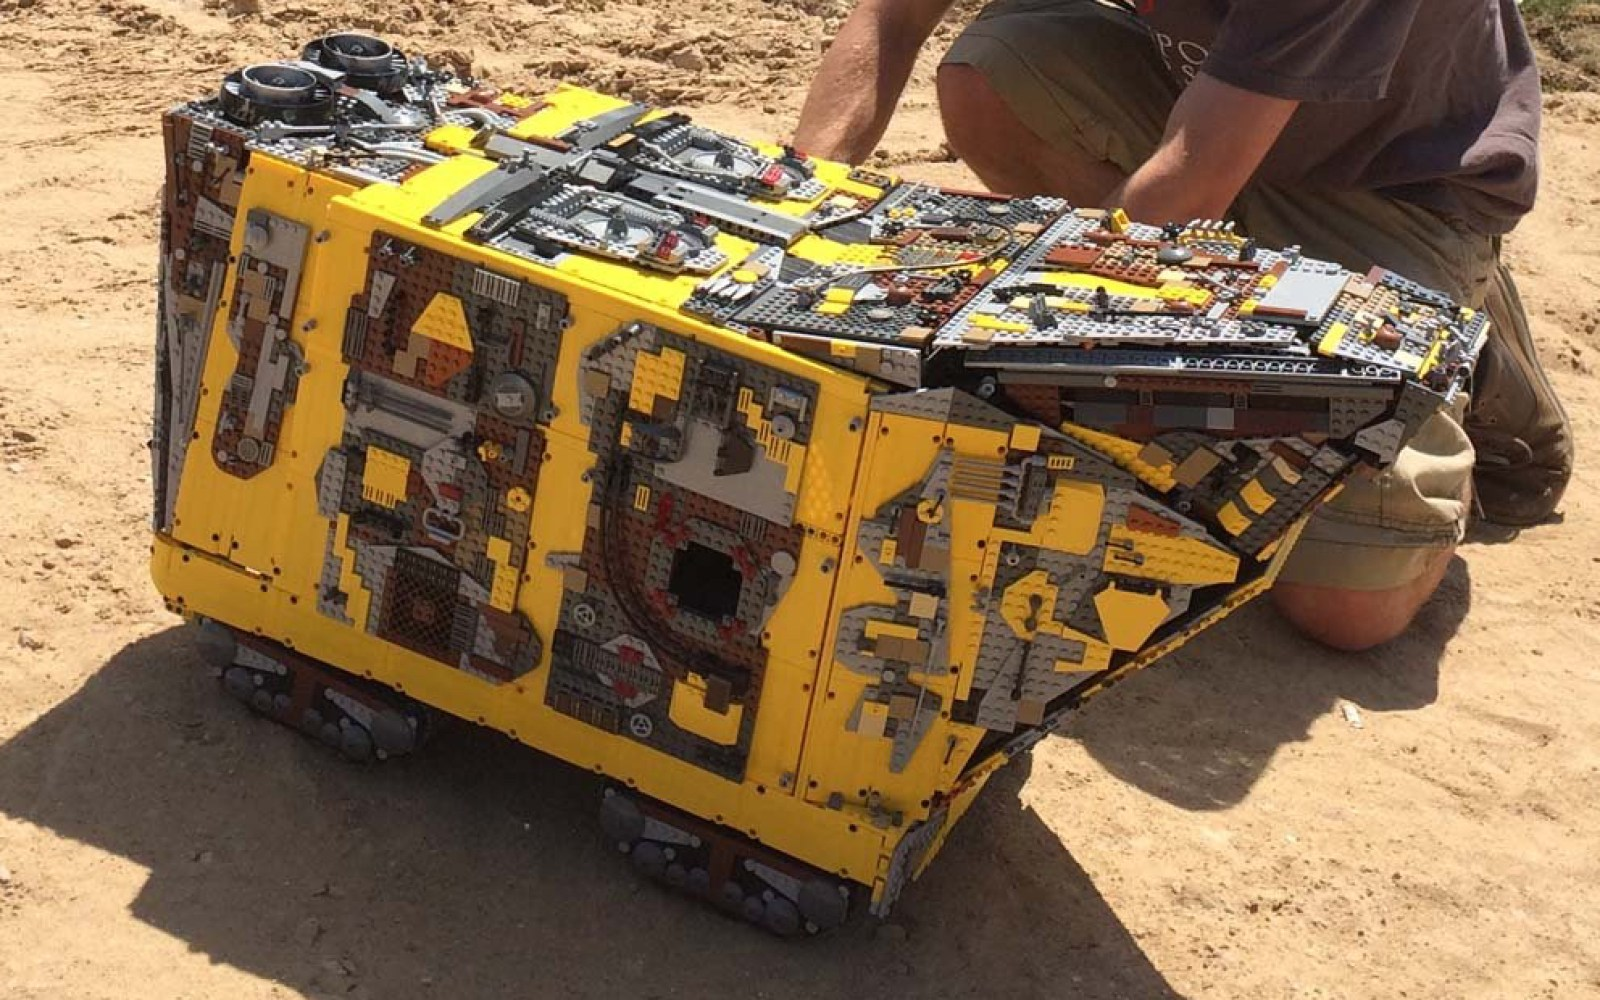 Utinni! This unbelievably detailed Sandcrawler might be one of the coolest Star Wars LEGO customs ever